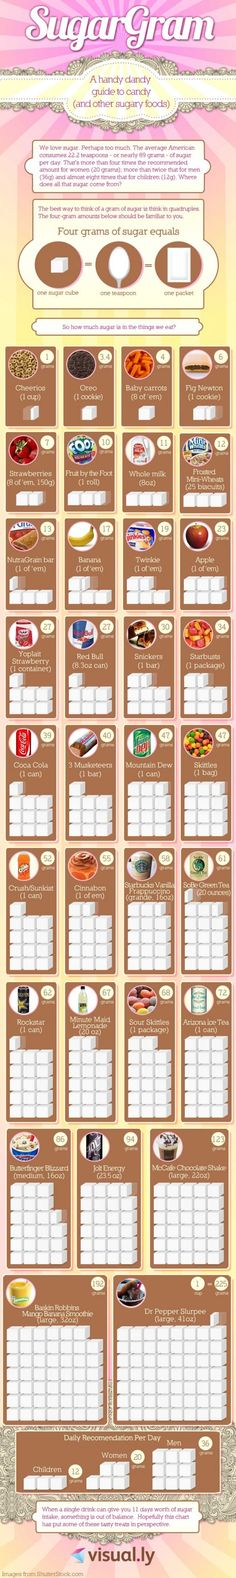 Wow. SugarGram Infographic